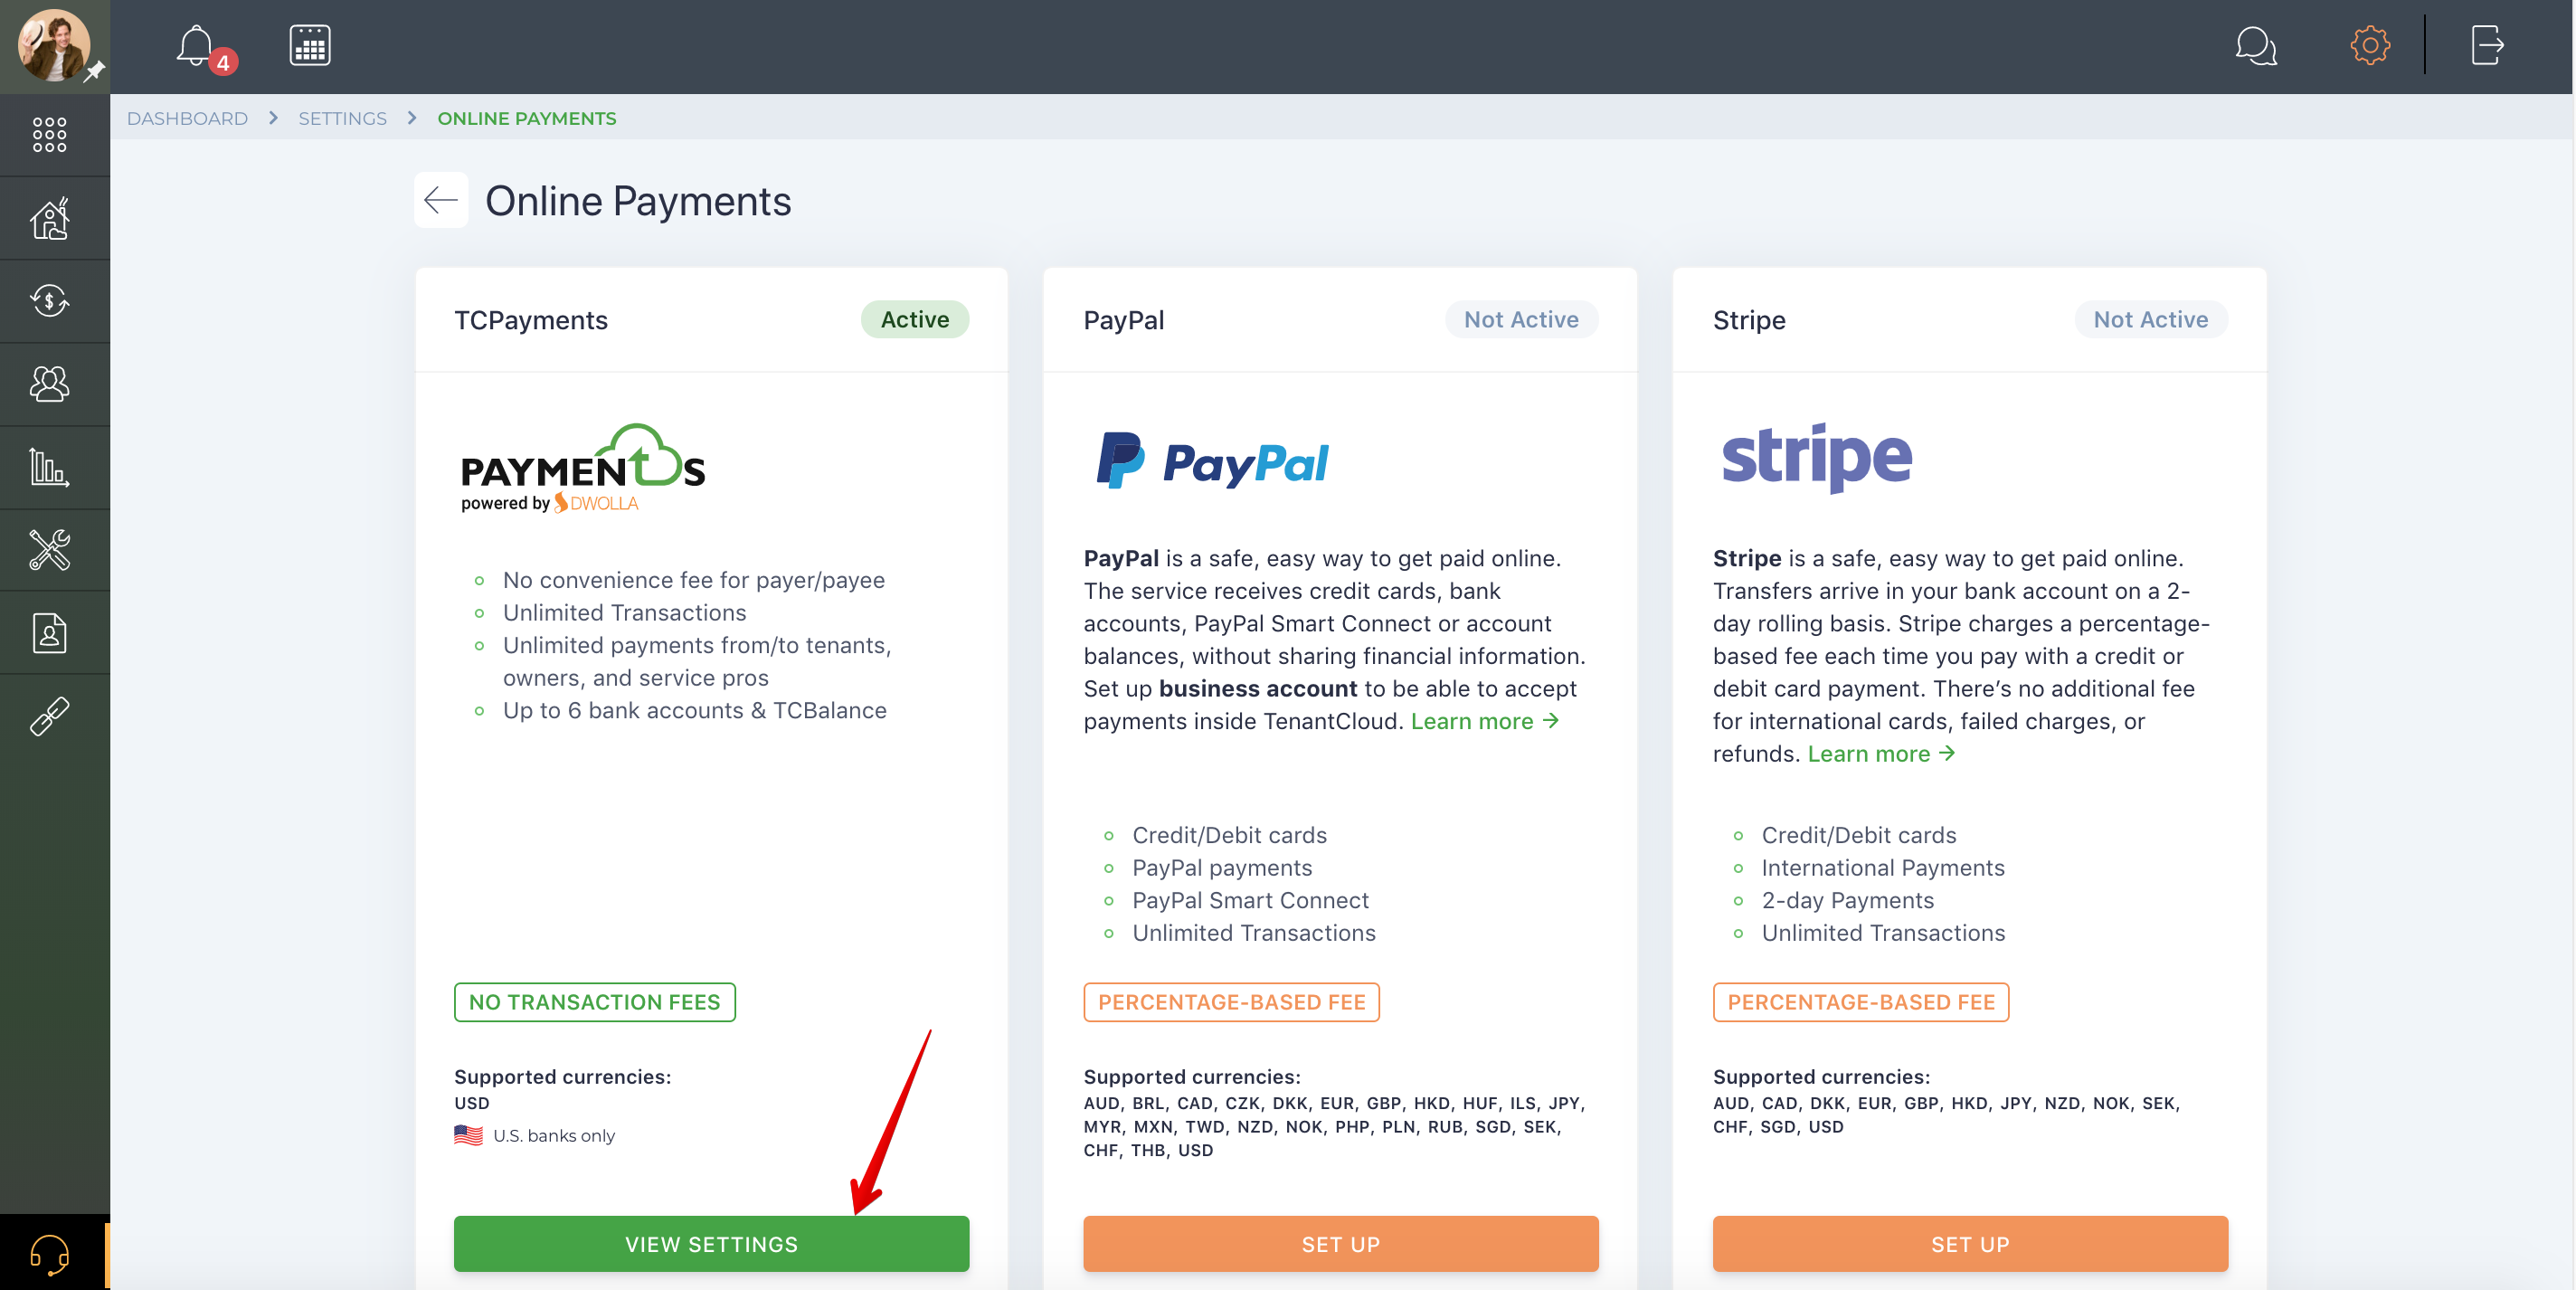 Payment Activity & Searching